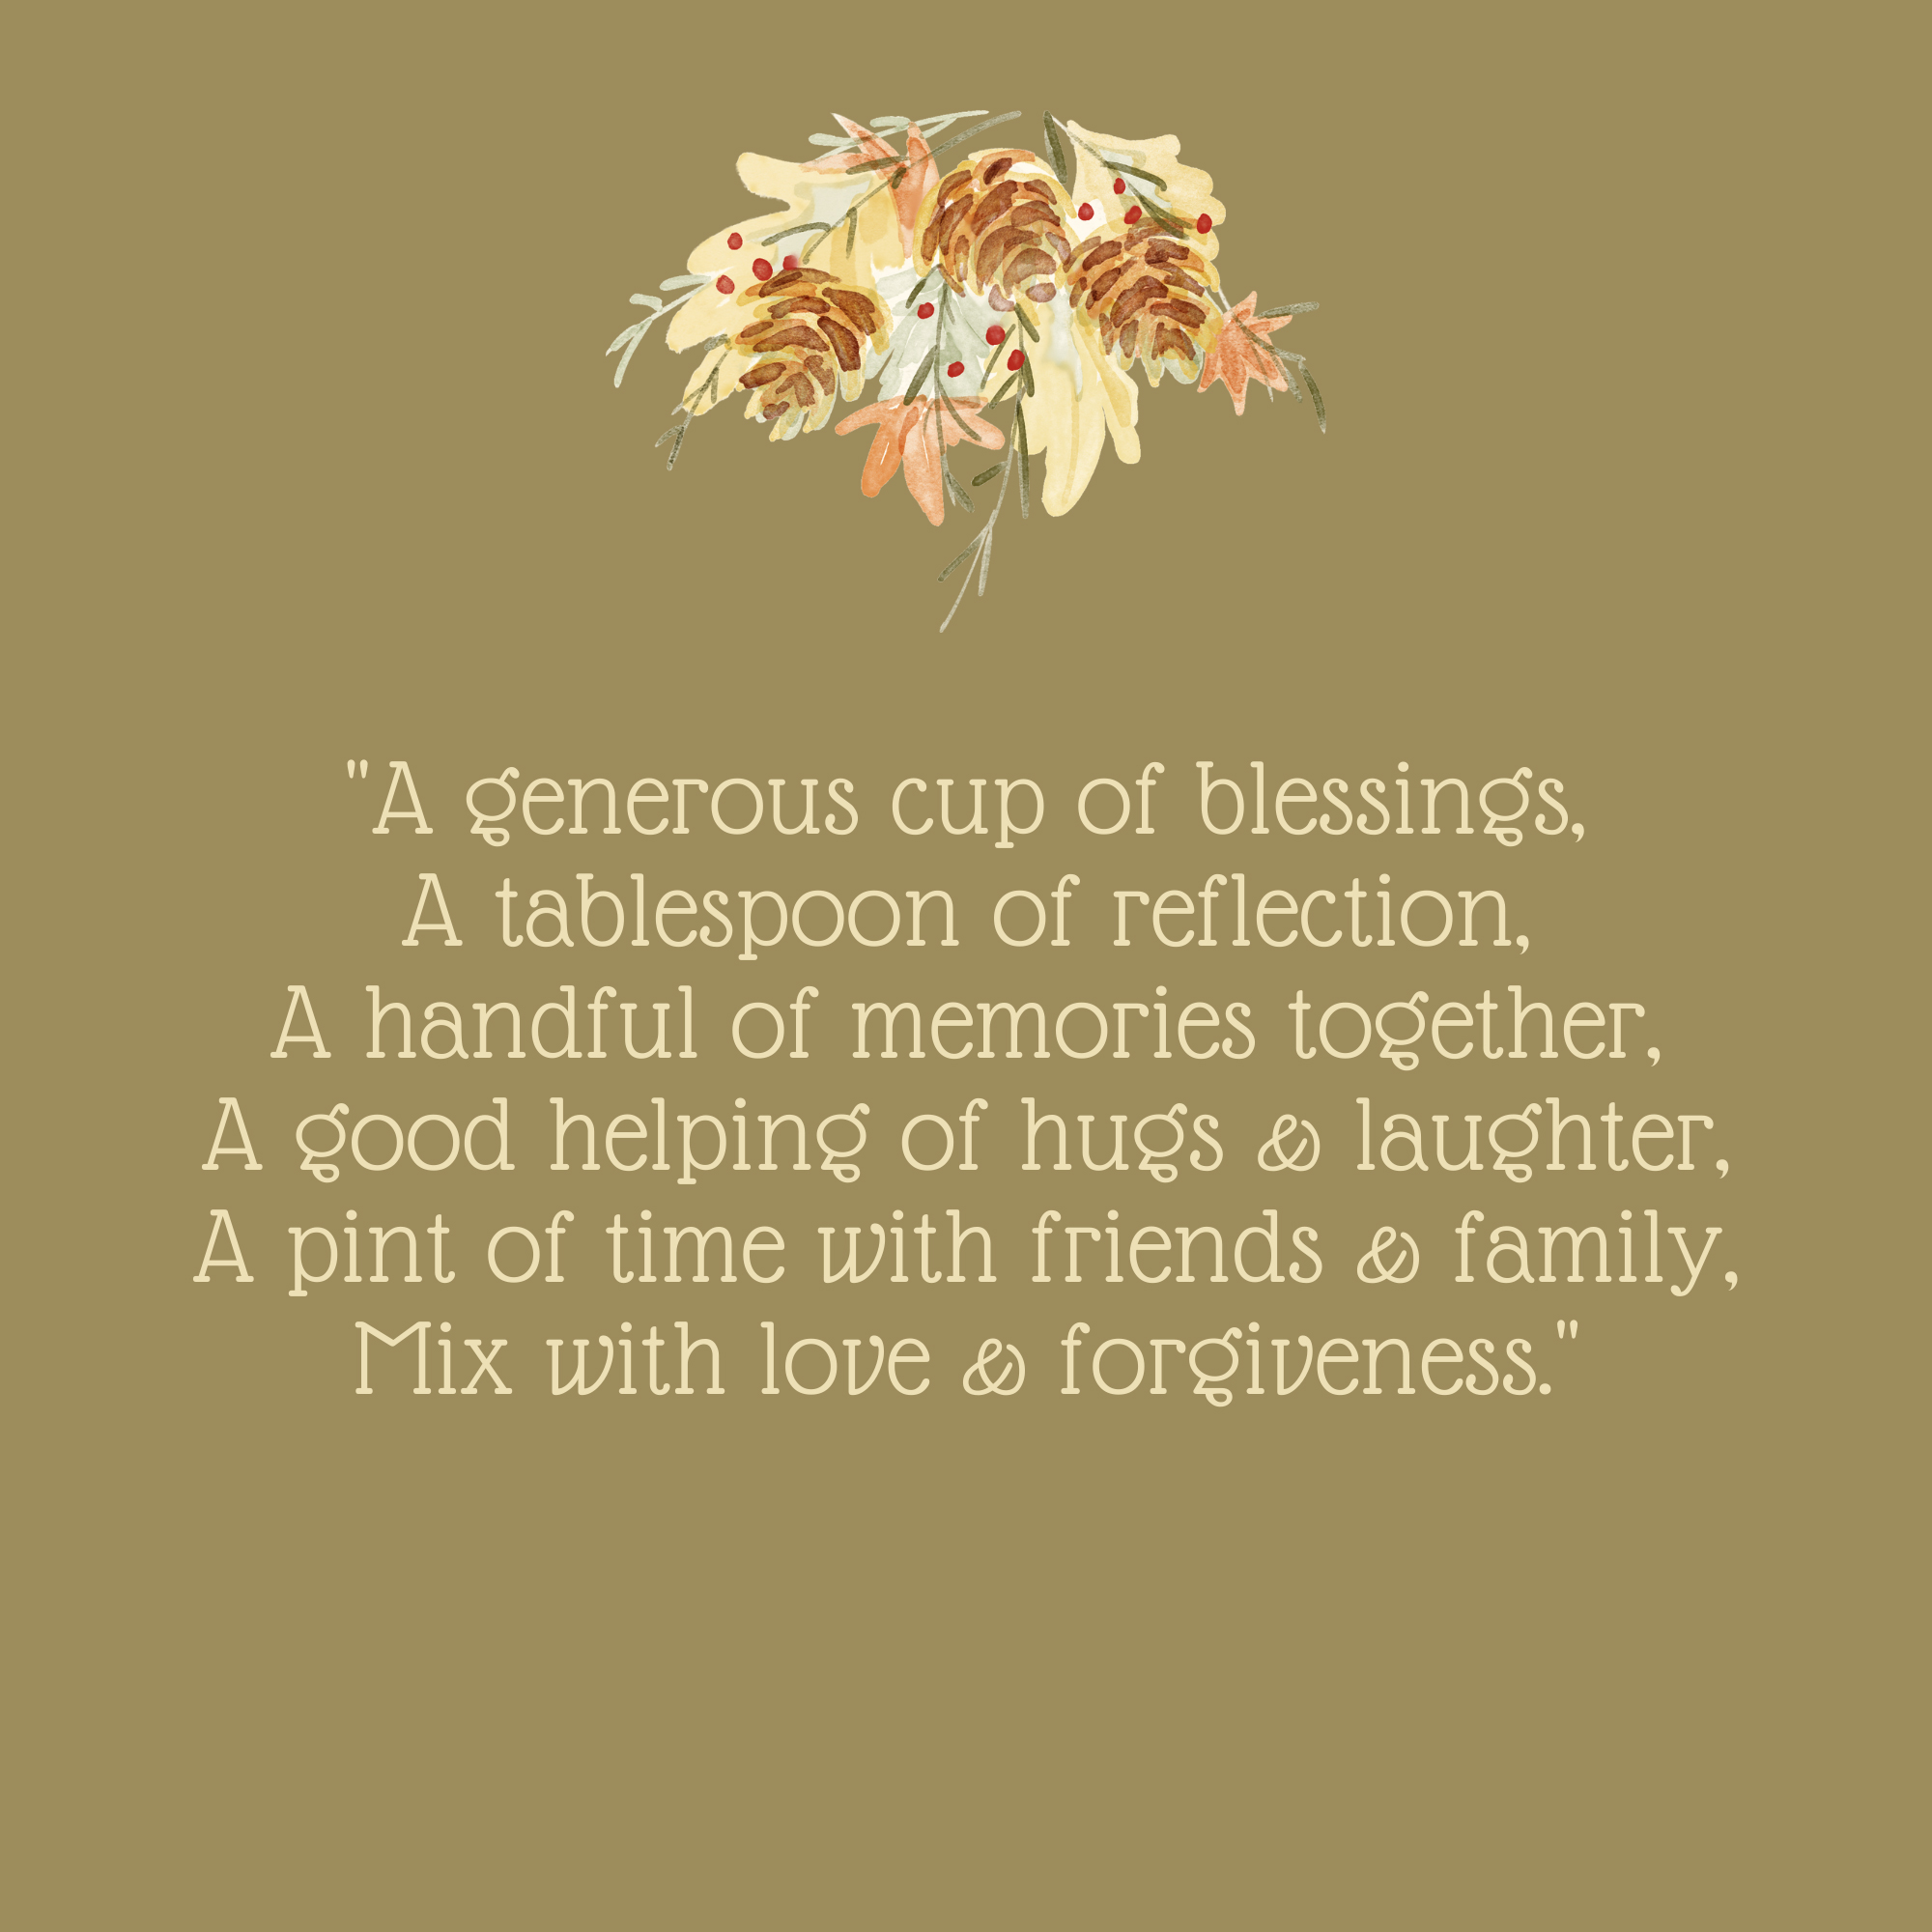 A Generous Cup of Blessings Thanksgiving Quote